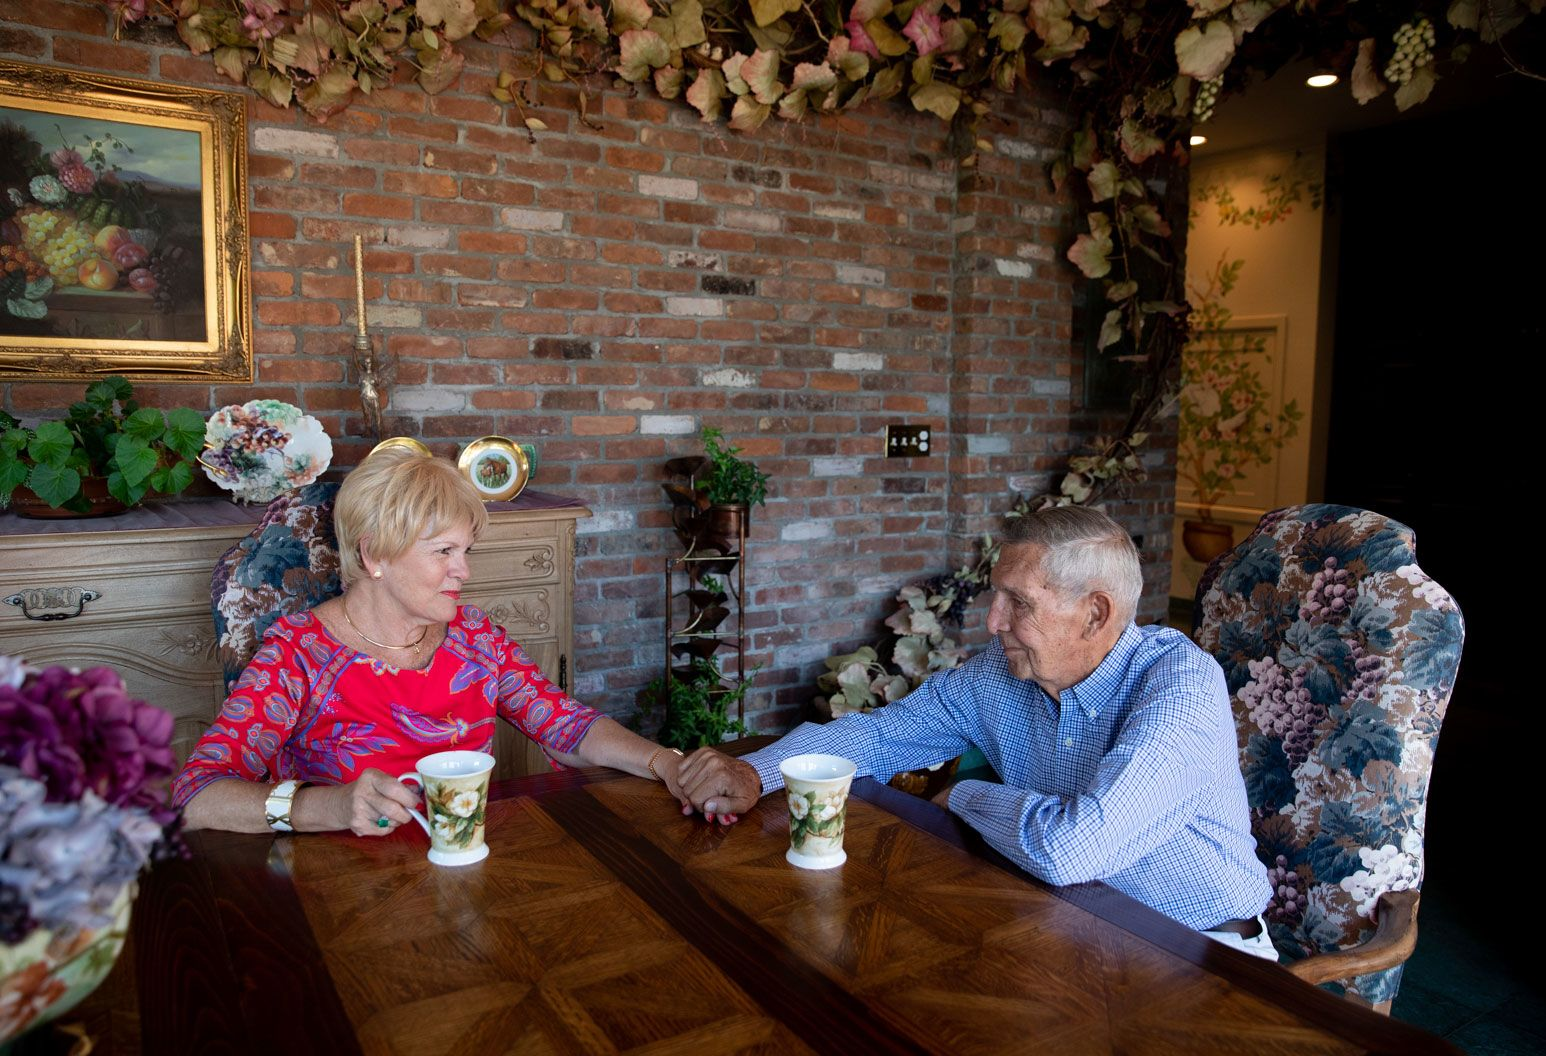 An elderly couple sits at a dining table holding hands. They are in a room with a brick wall, a fireplace, and a lot of floral decor.